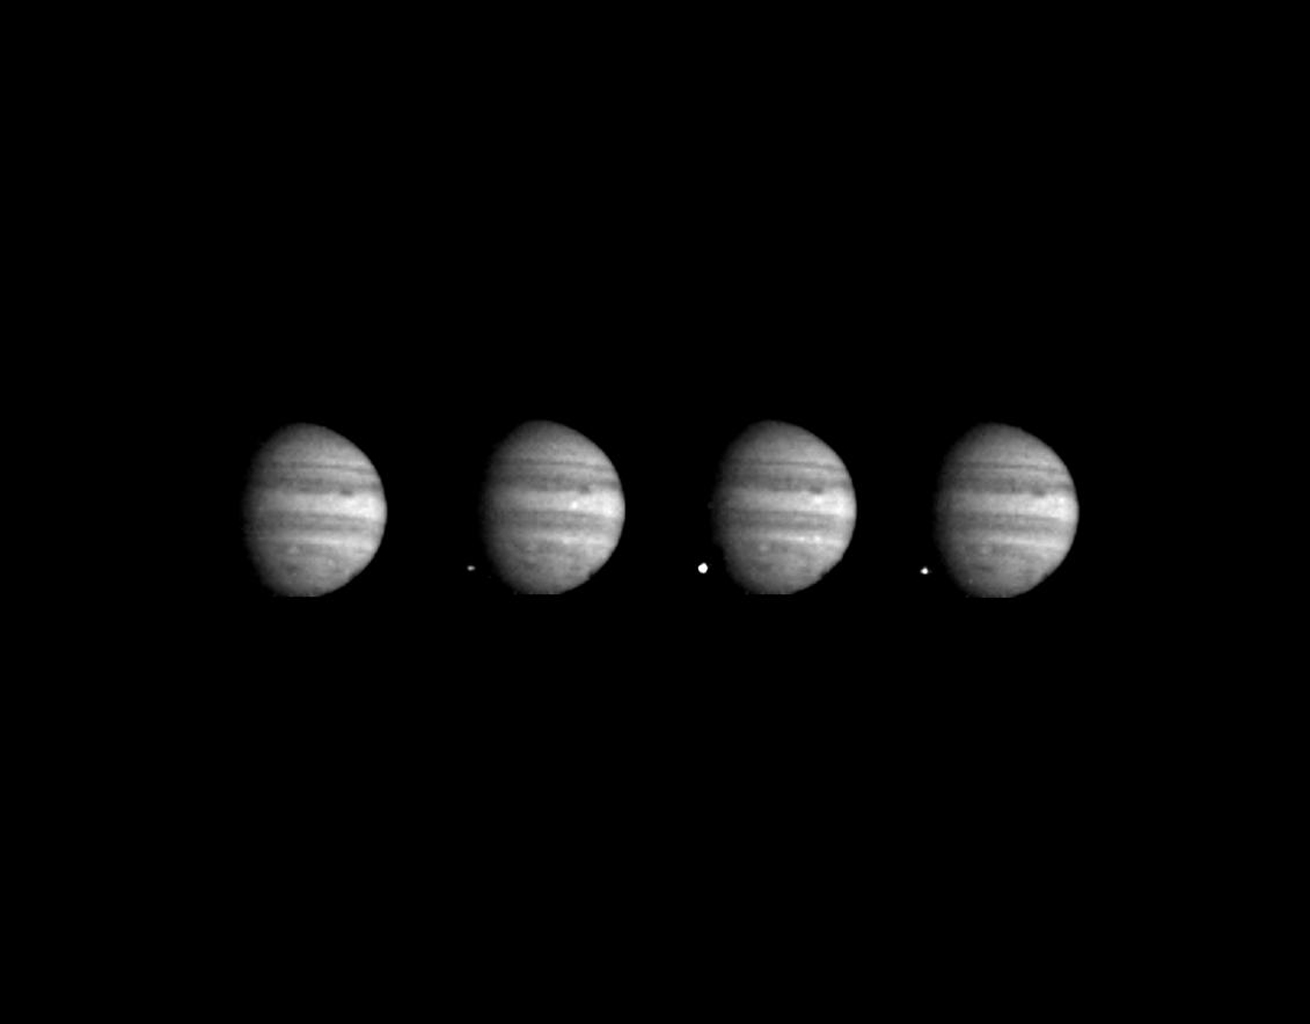 These four images of Jupiter and the luminous night-side impact of fragment W of Comet Shoemaker-Levy 9 were taken NASA's Galileo spacecraft on July 22, 1994.